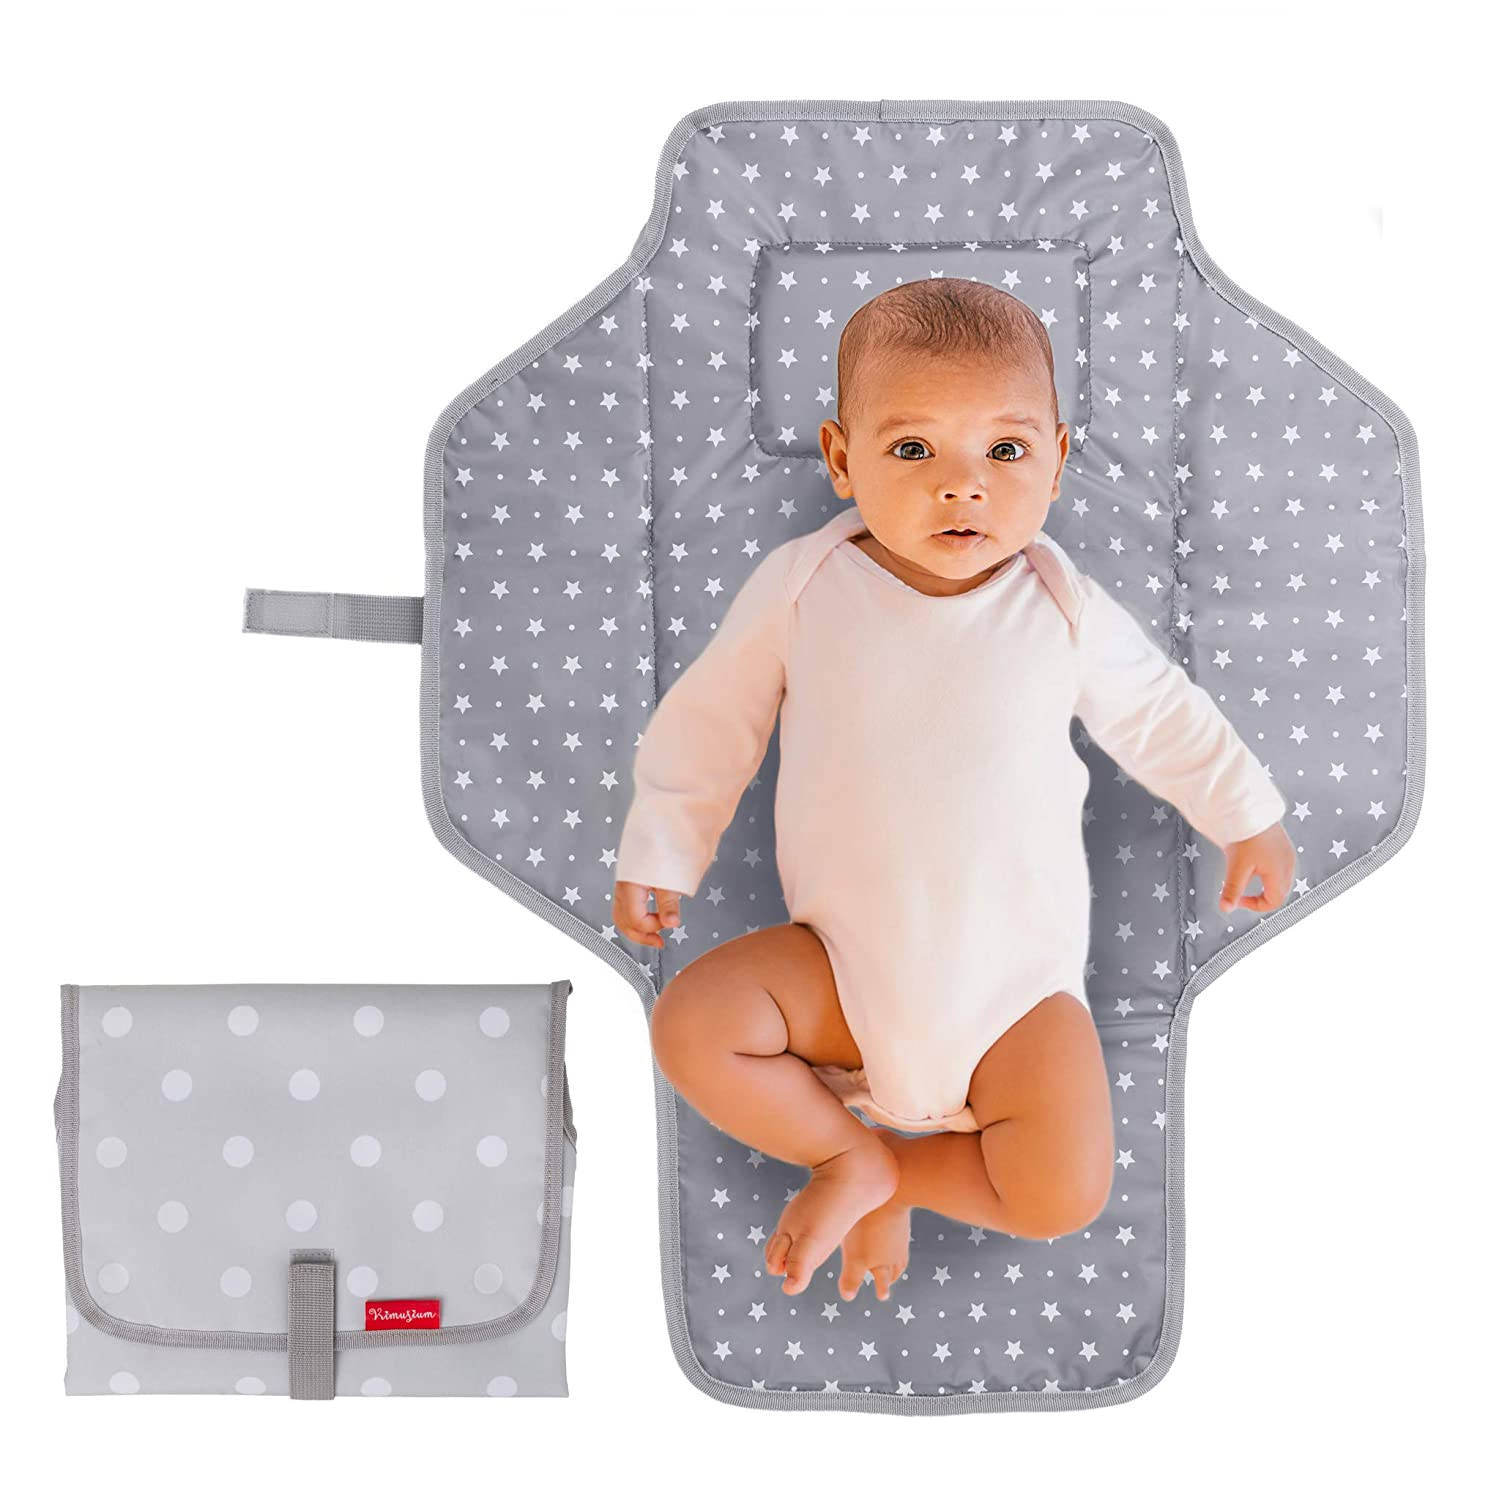 1# Houndstooth Baby Portable Changing Pad Diaper Bag Lightweight Travel Mat Station Multifunctional Cotton Waterproof Kit